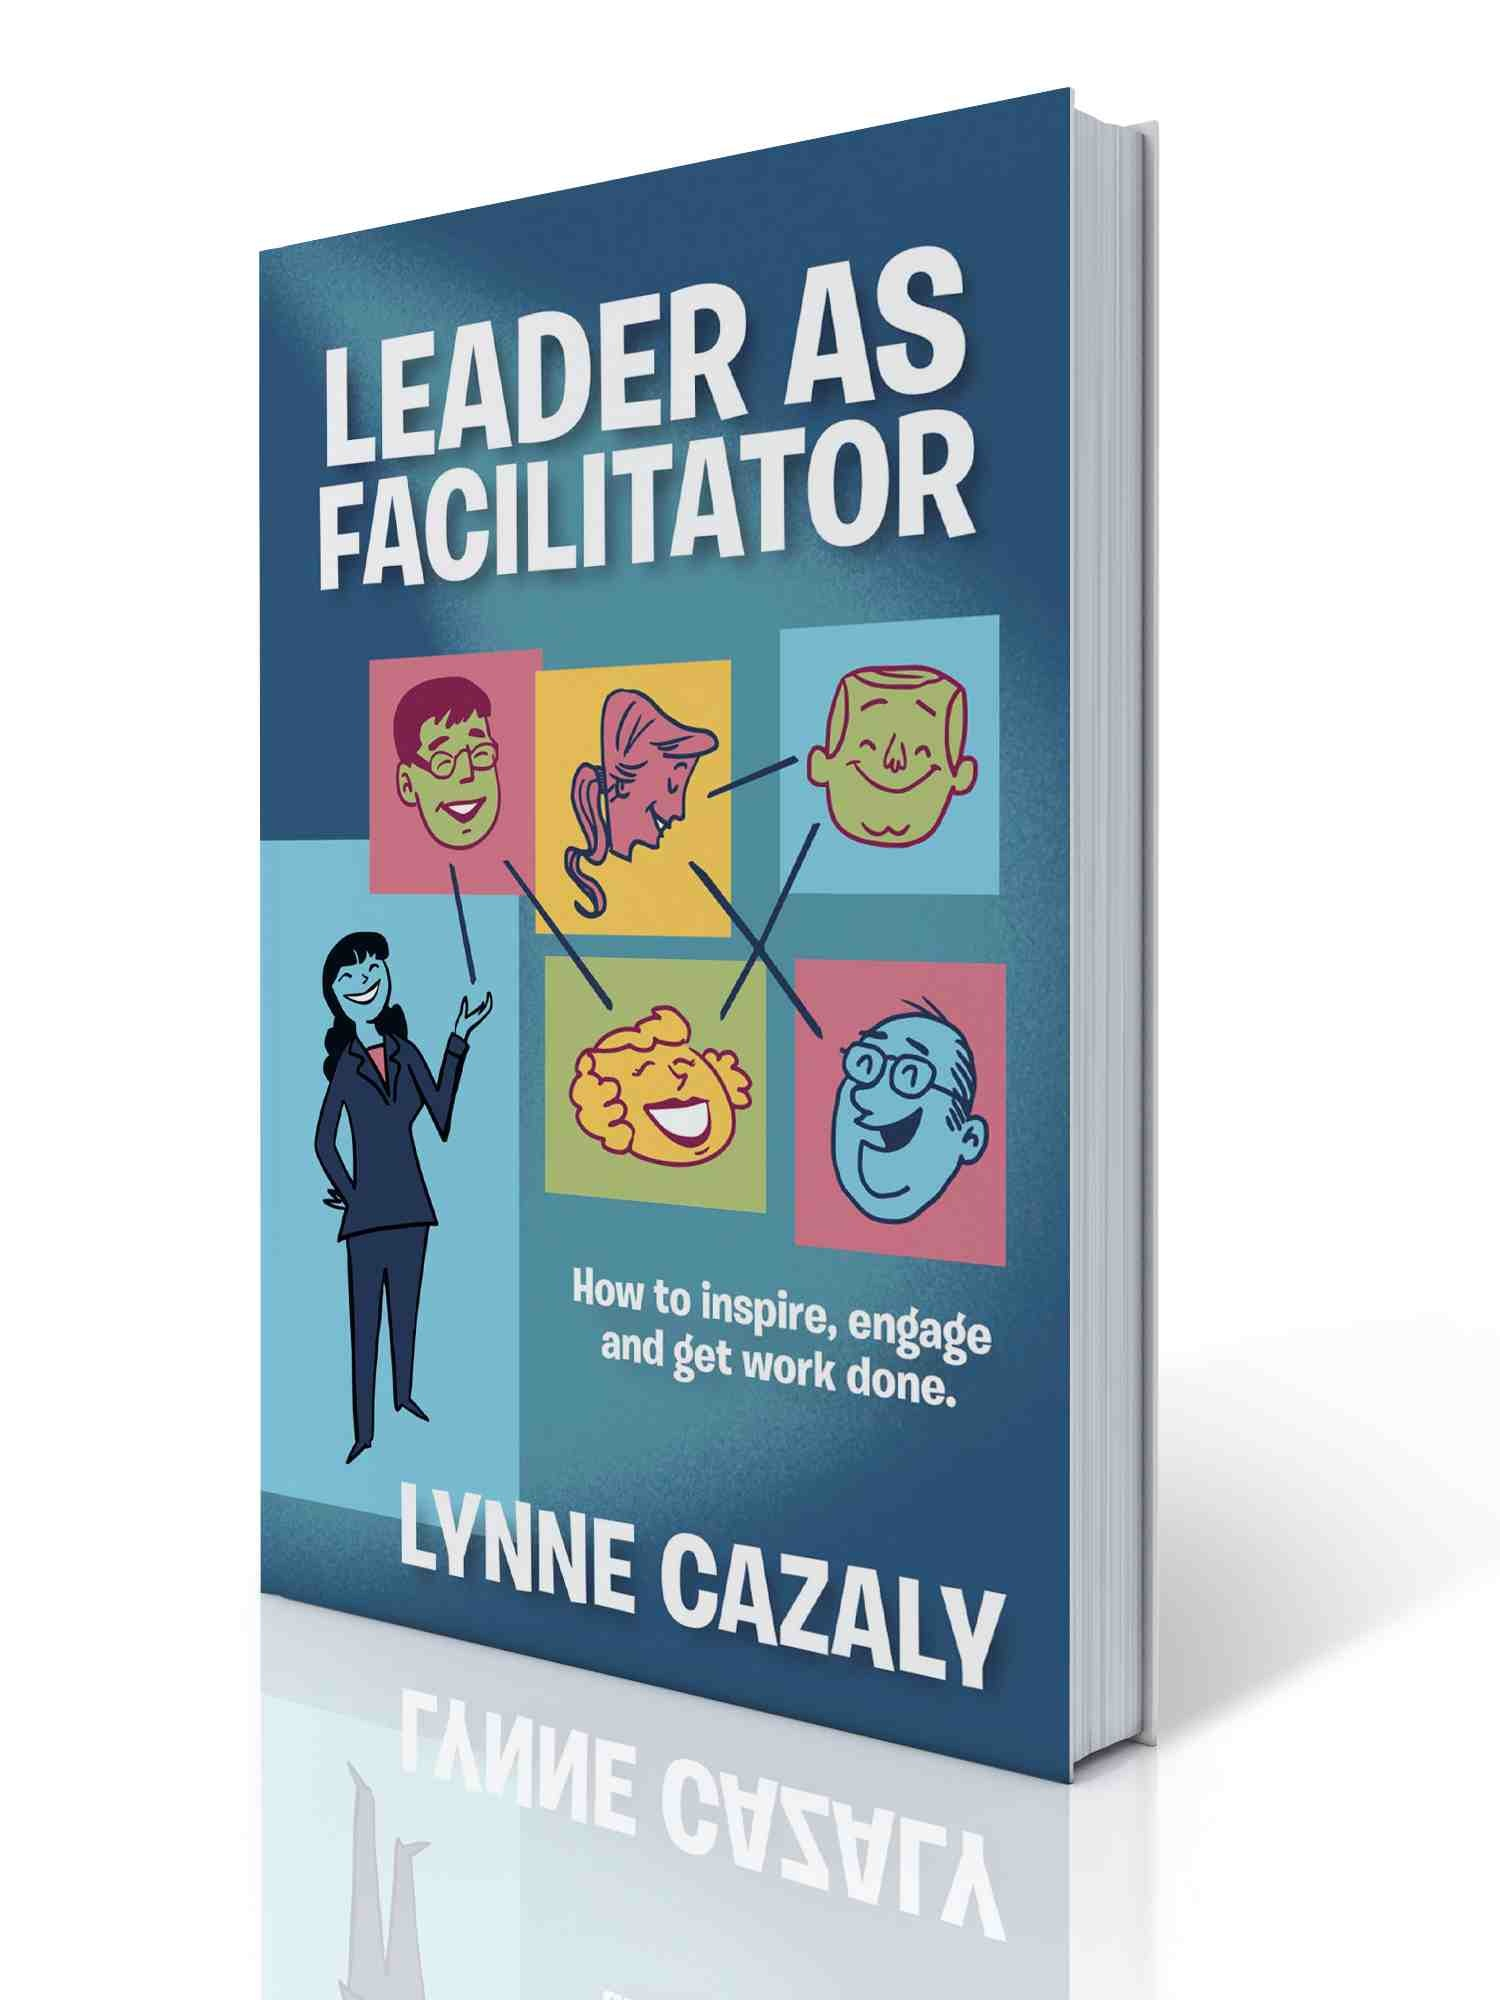 BOOK: Leader as Facilitator: How to inspire, engage and get work done